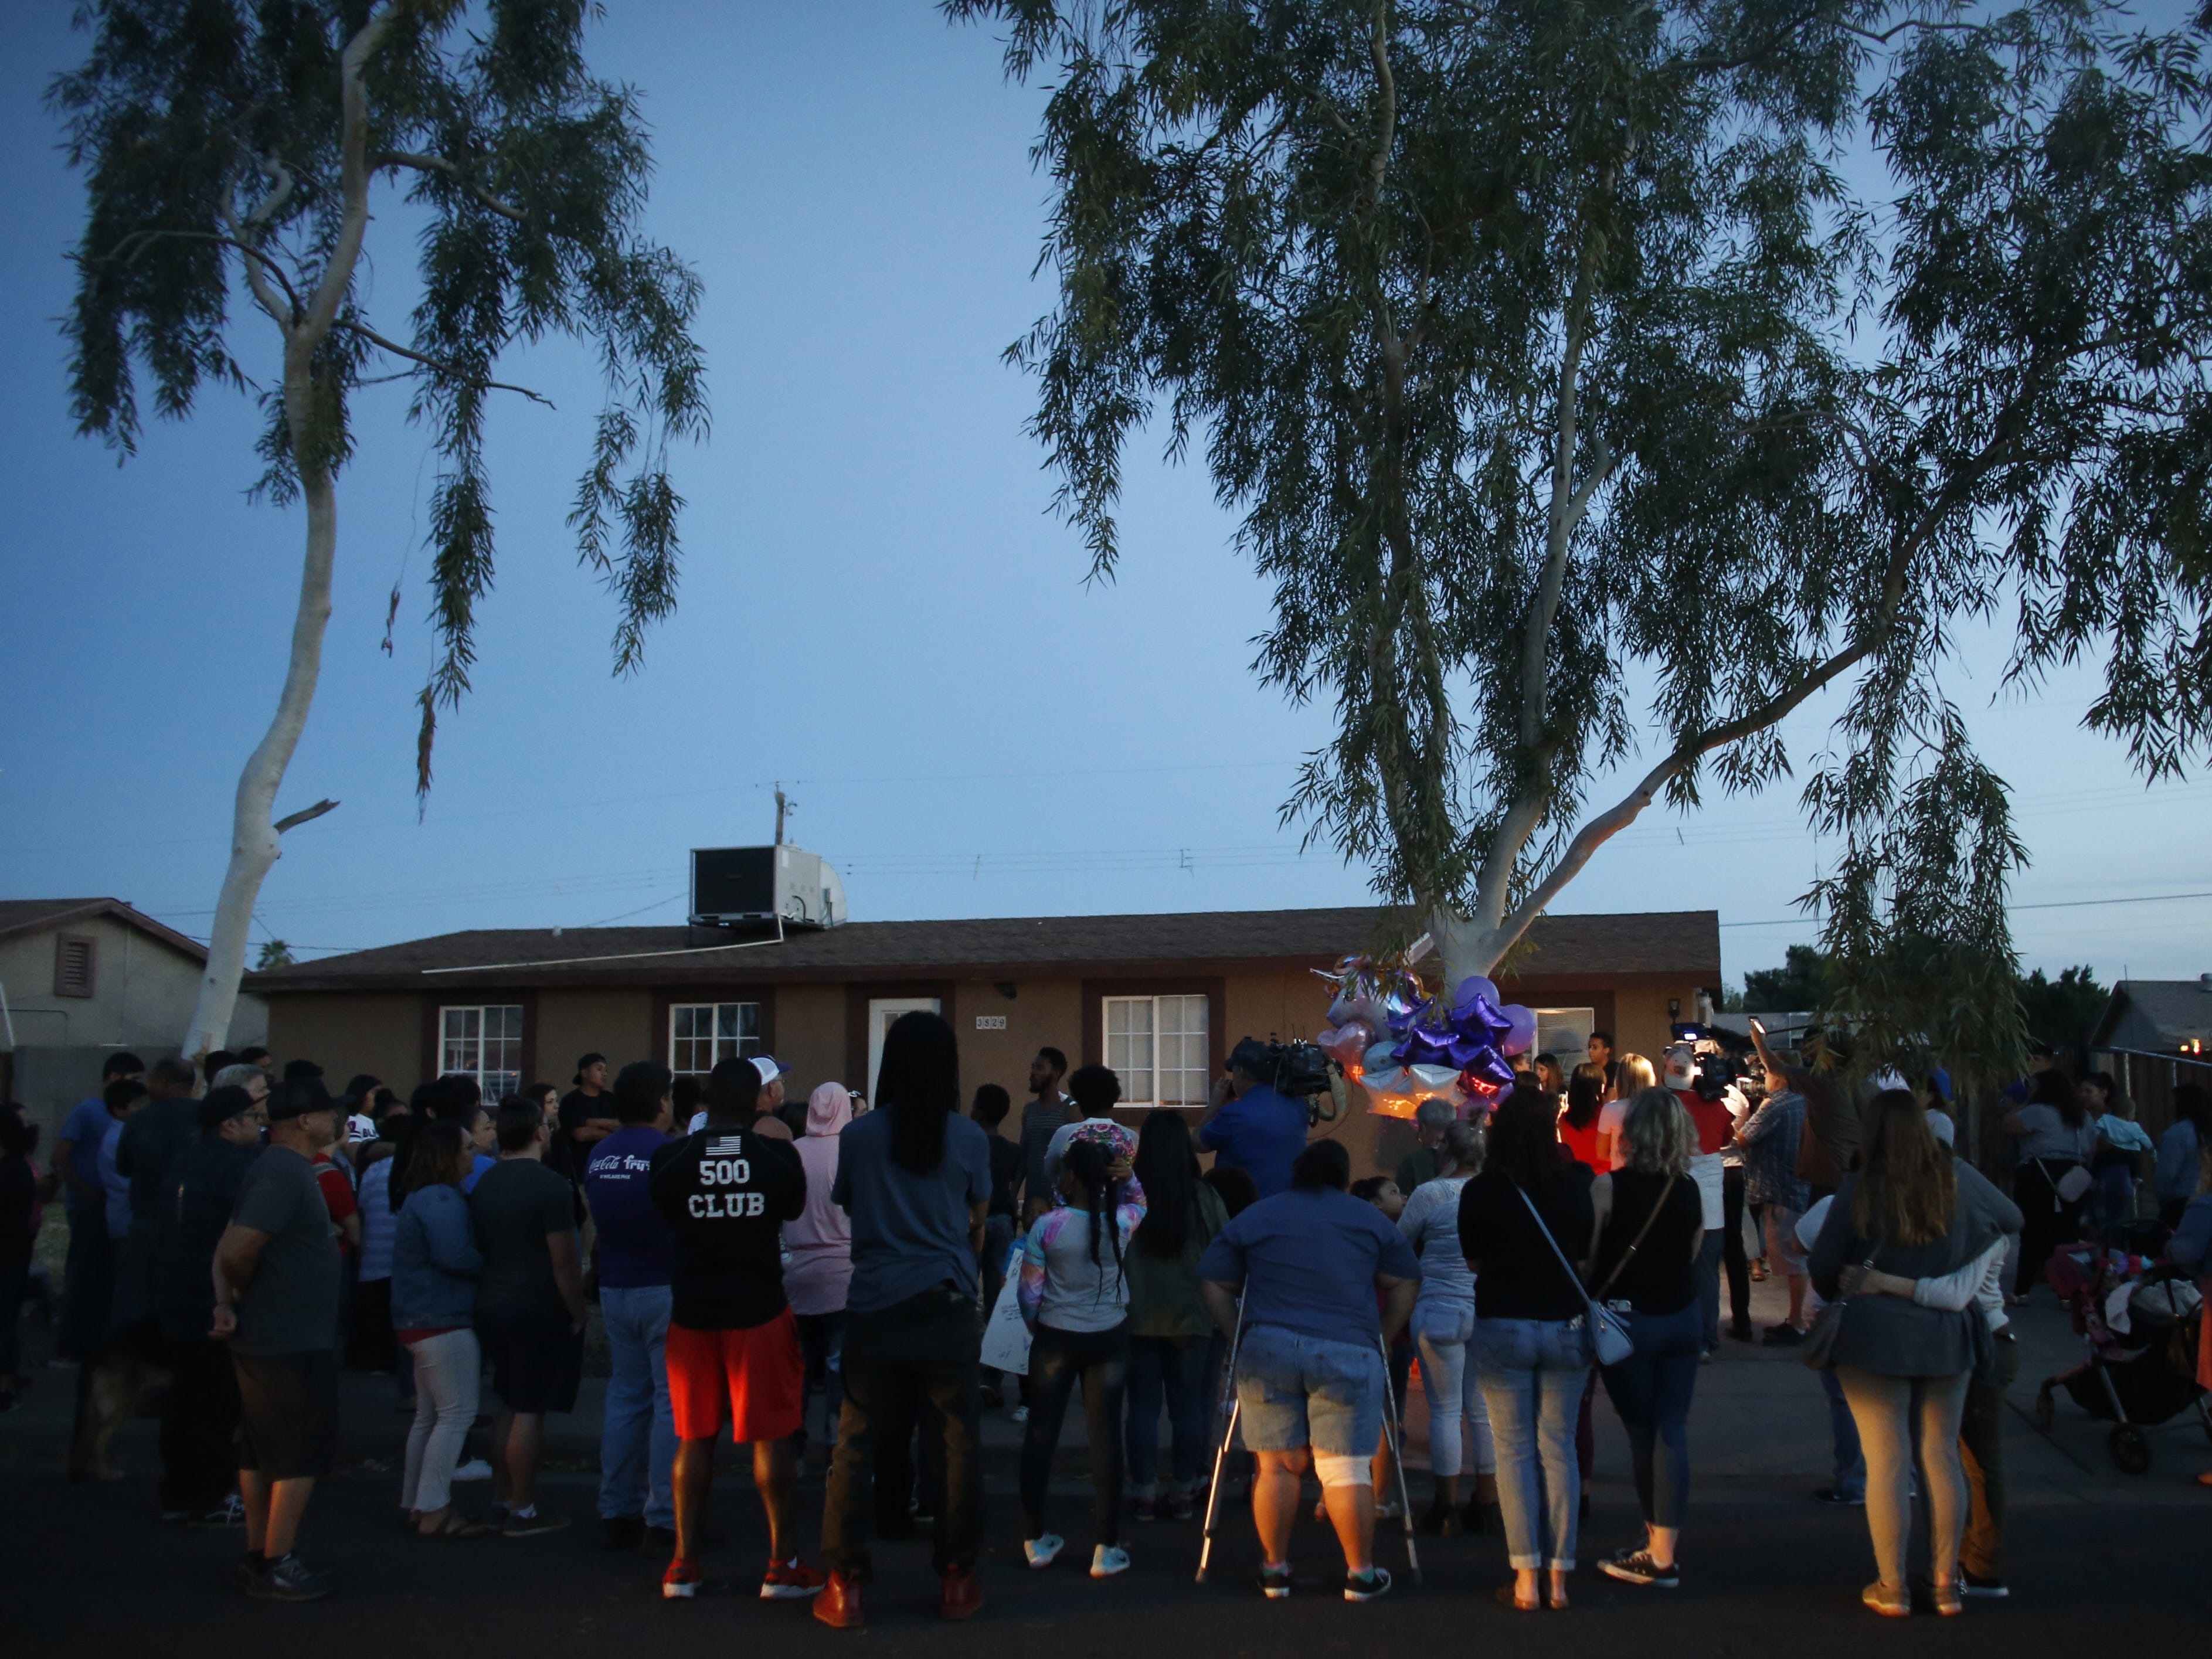 Supporters arrive as the sun sets at a vigil for Summer Bell Brown on April 5, 2019, outside her home where she was shot and killed in Phoenix. Brown was 10 years old.